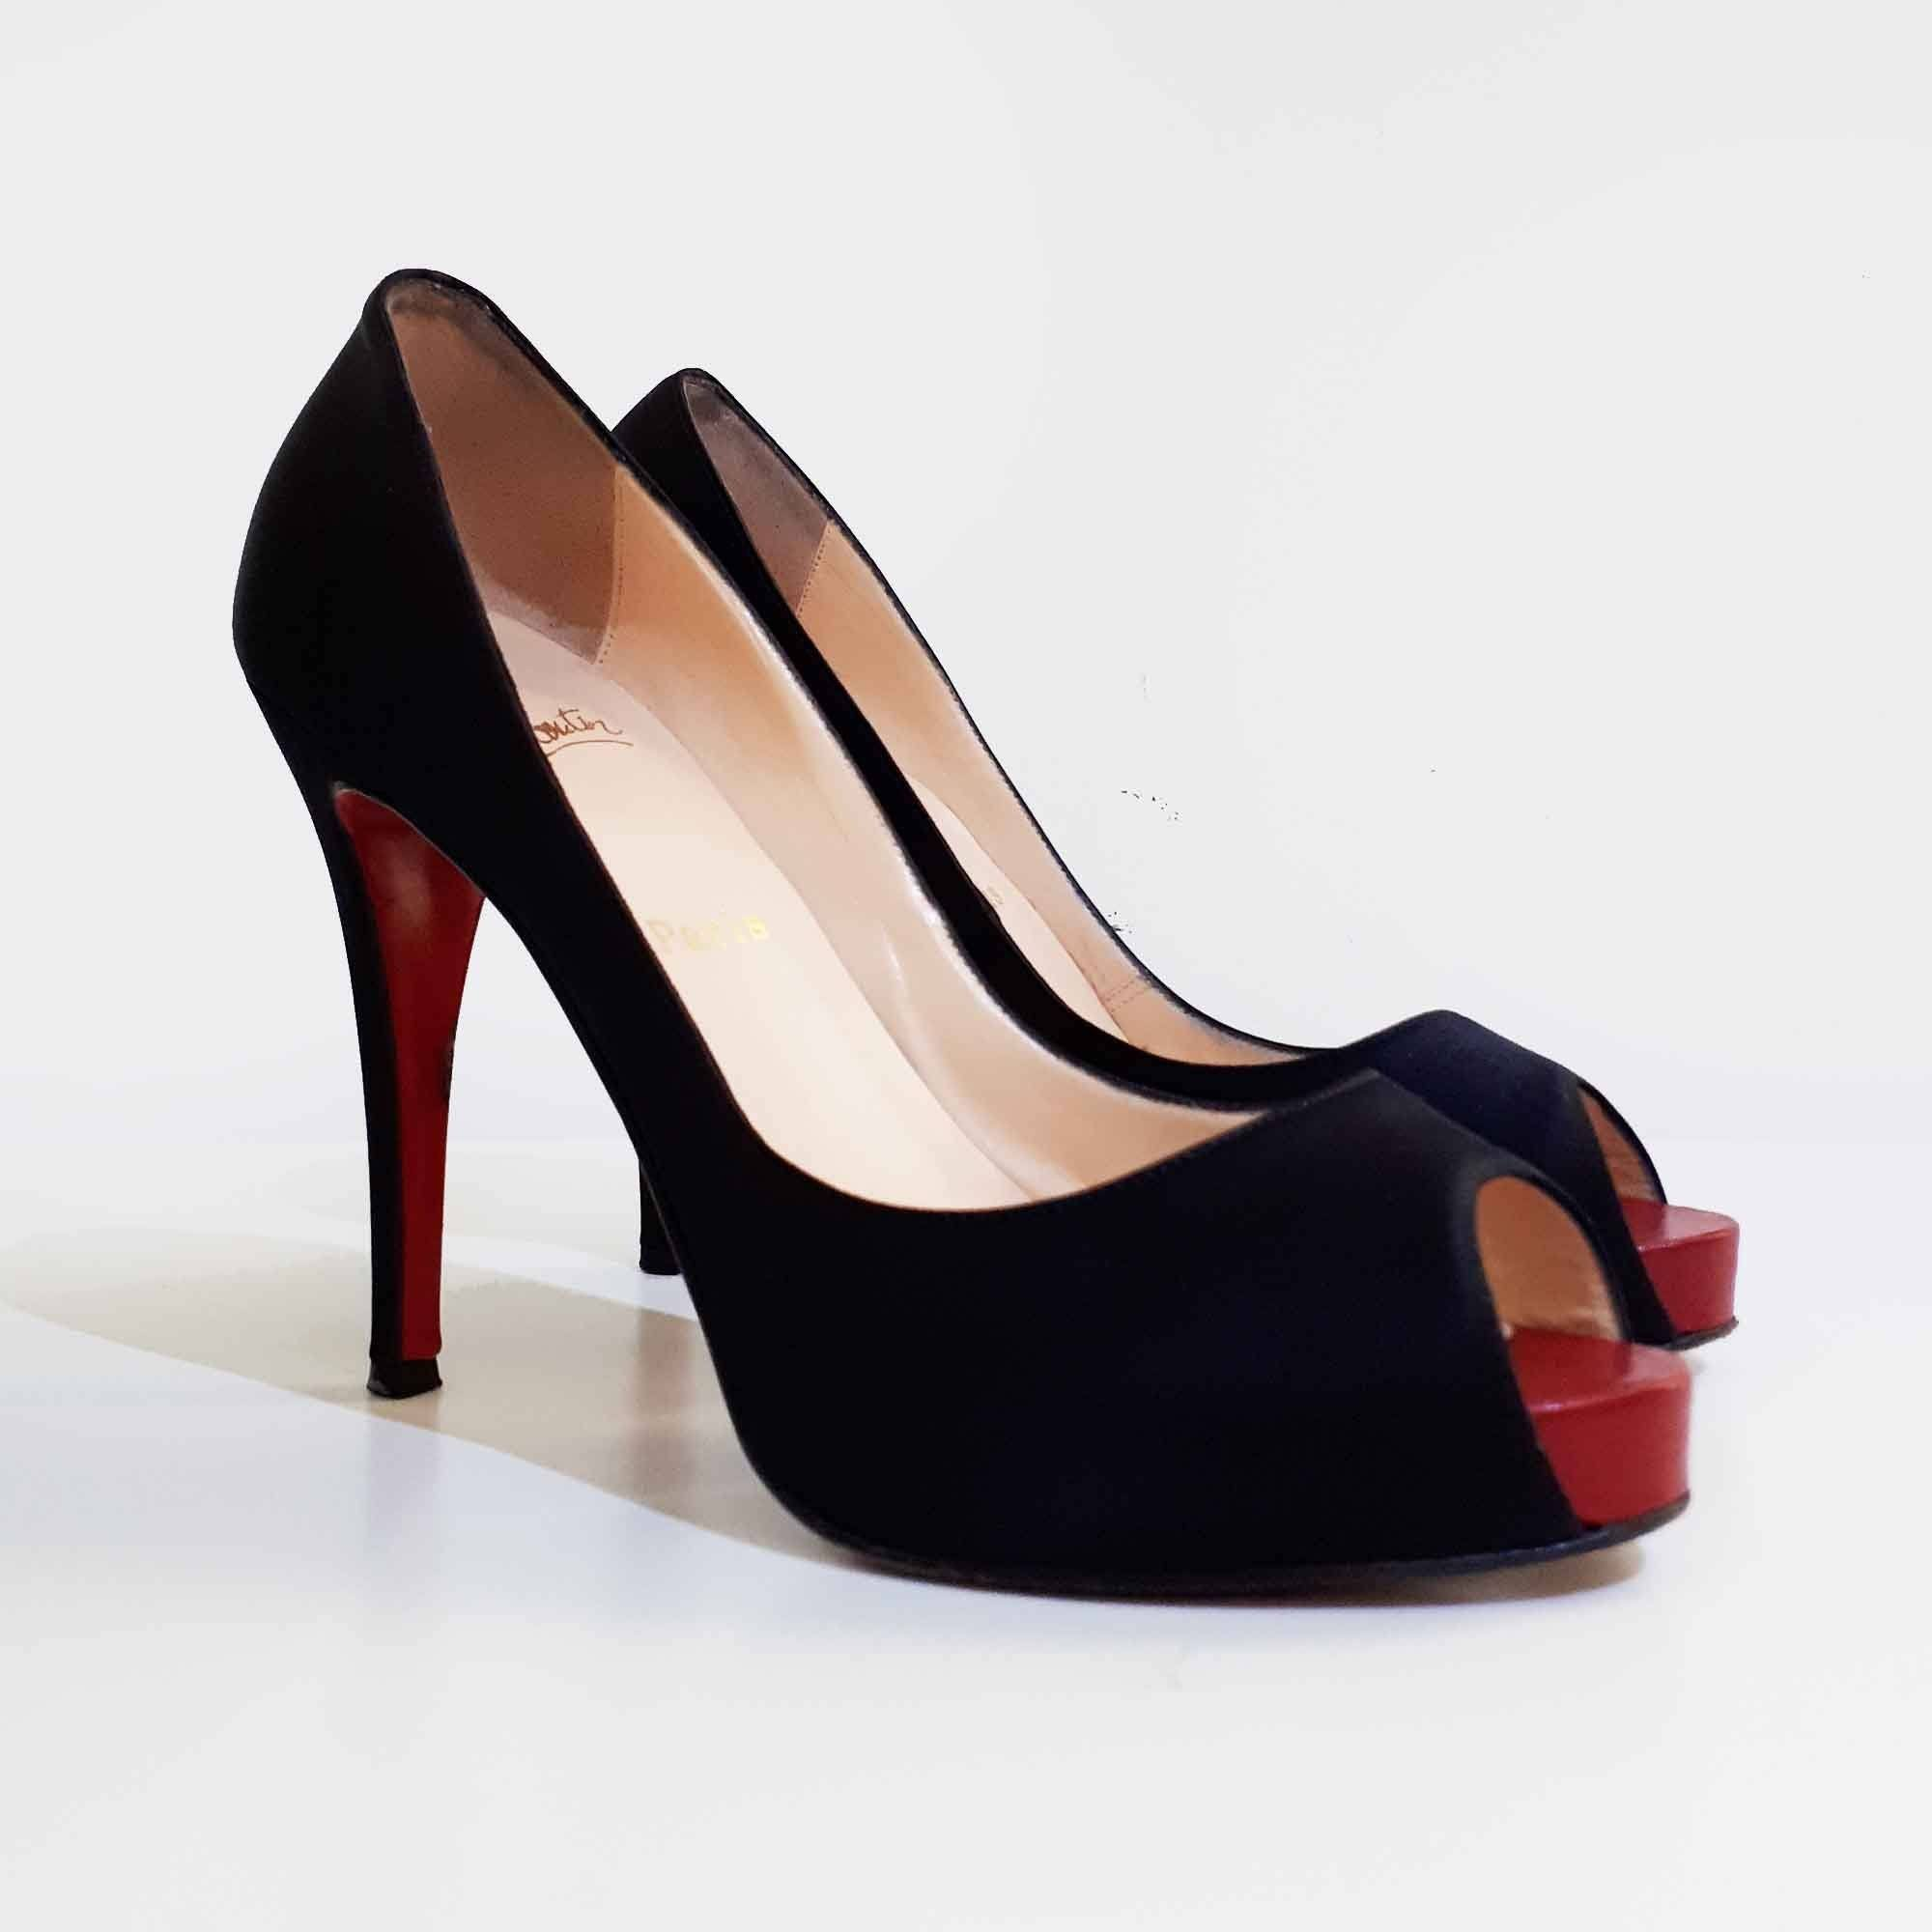 Christian Louboutin Black Satin Peep Toe Heels